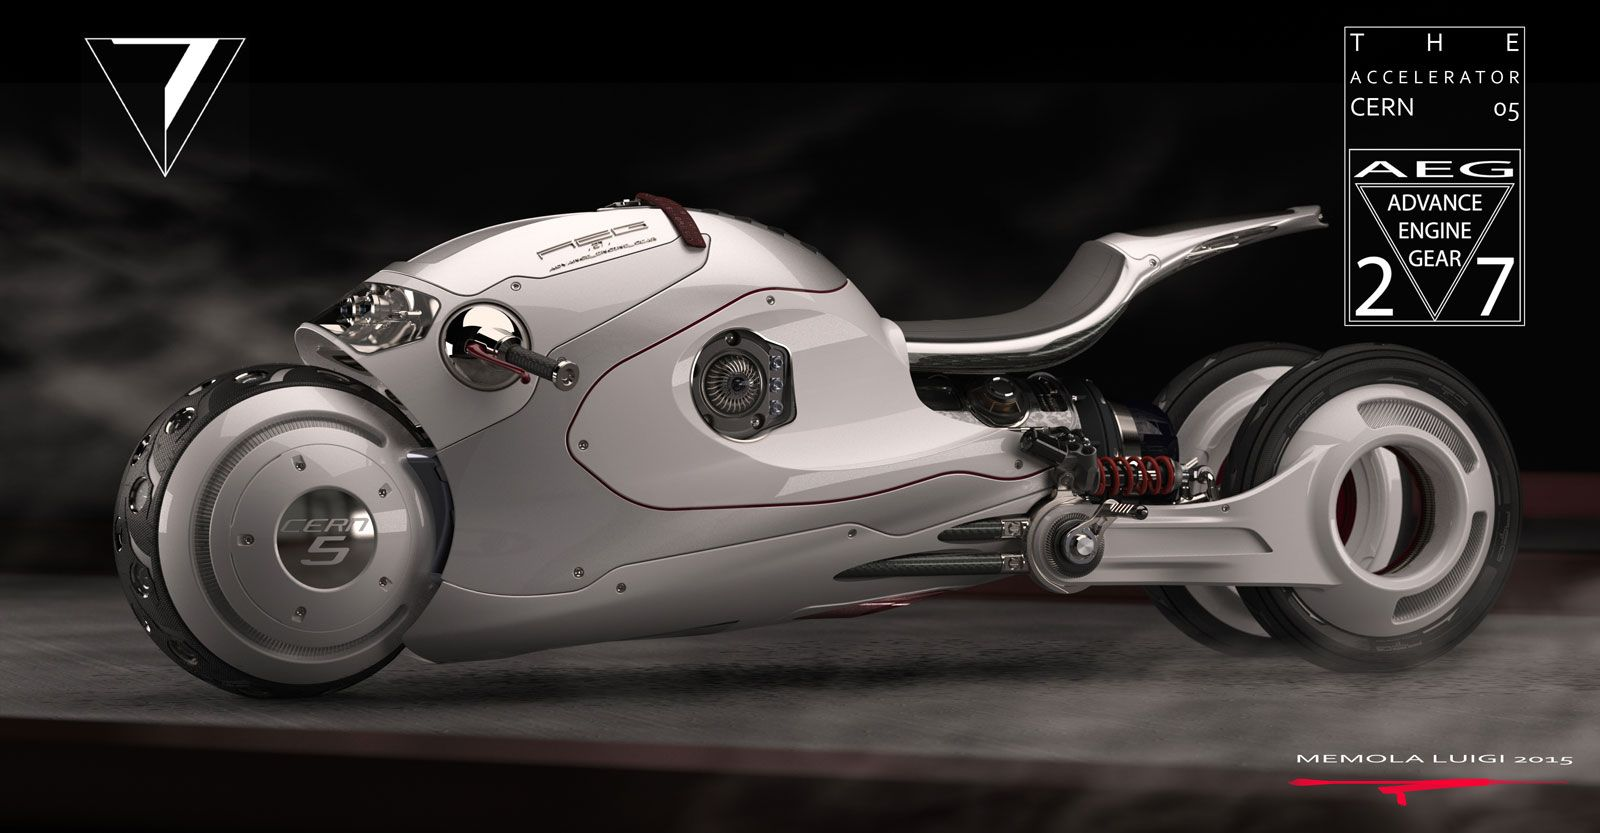 a938eec5a881 Cern 05 project is a futuristic race with jet-powered bikes - Car Body  Design